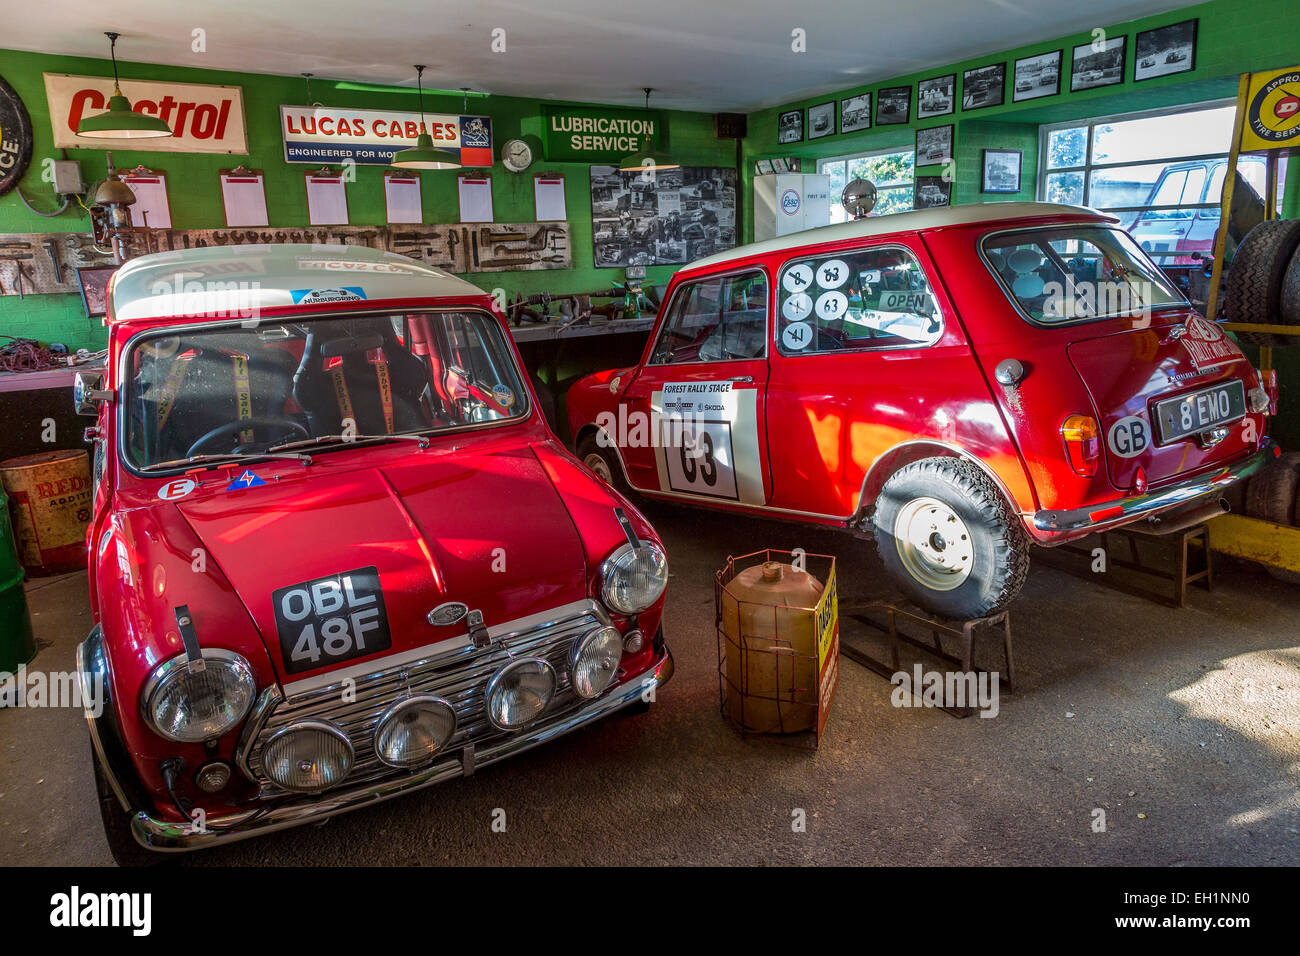 1963 and 1967 works rally mini cooper s cars 8emo and obl48f in the stock photo royalty free. Black Bedroom Furniture Sets. Home Design Ideas